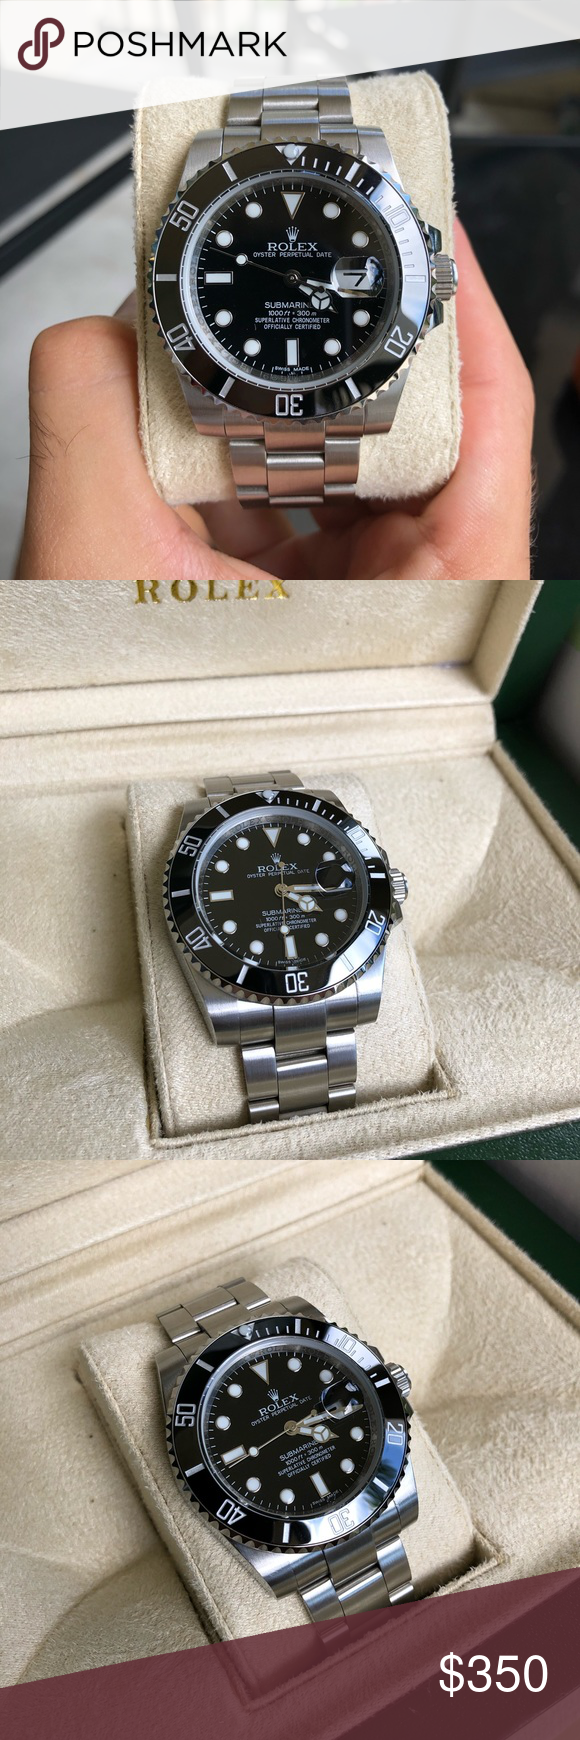 Rolex Submariner Stainless steel Accessories Watches #rolexsubmariner Rolex Submariner Stainless steel Accessories Watches #rolexsubmariner